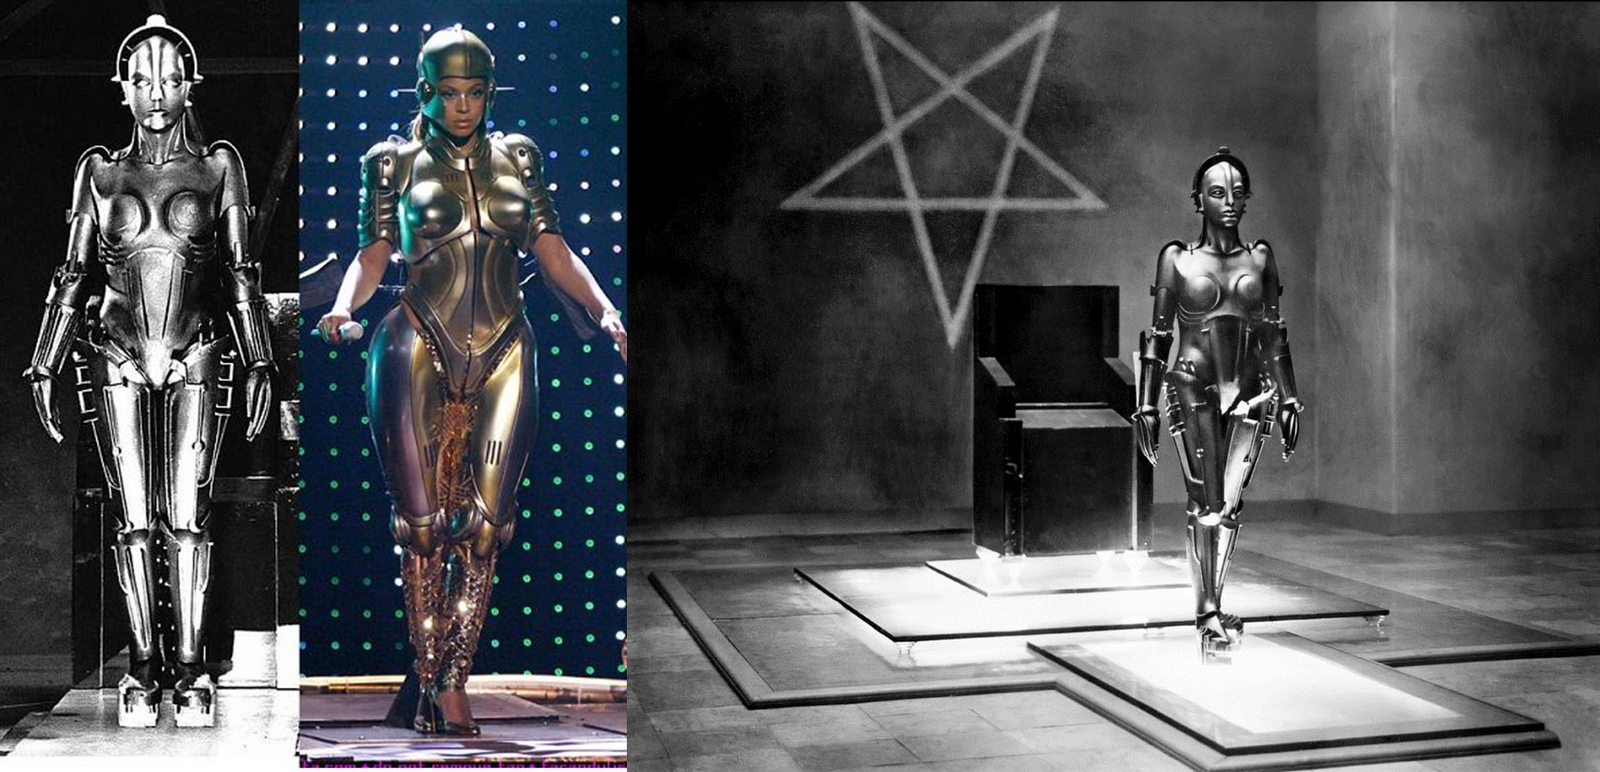 A pop star mimics a character from the old film Metropolis in which a woman was created to destroy men through sexual desire using entertainment.